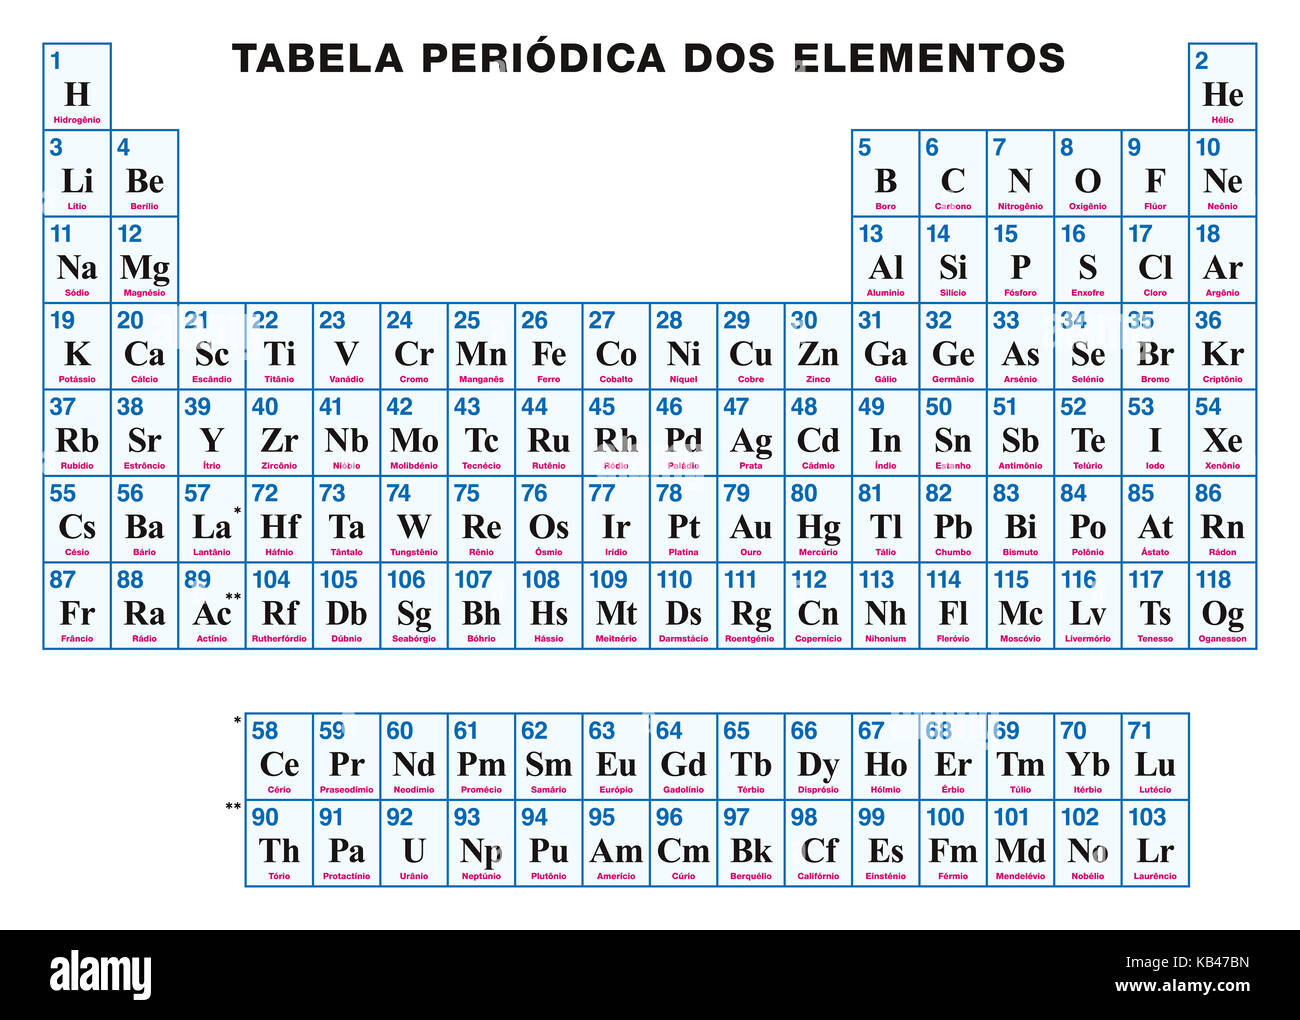 Lanthanides stock photos lanthanides stock images alamy periodic table of the elements portuguese tabular arrangement of chemical elements with atomic numbers urtaz Image collections